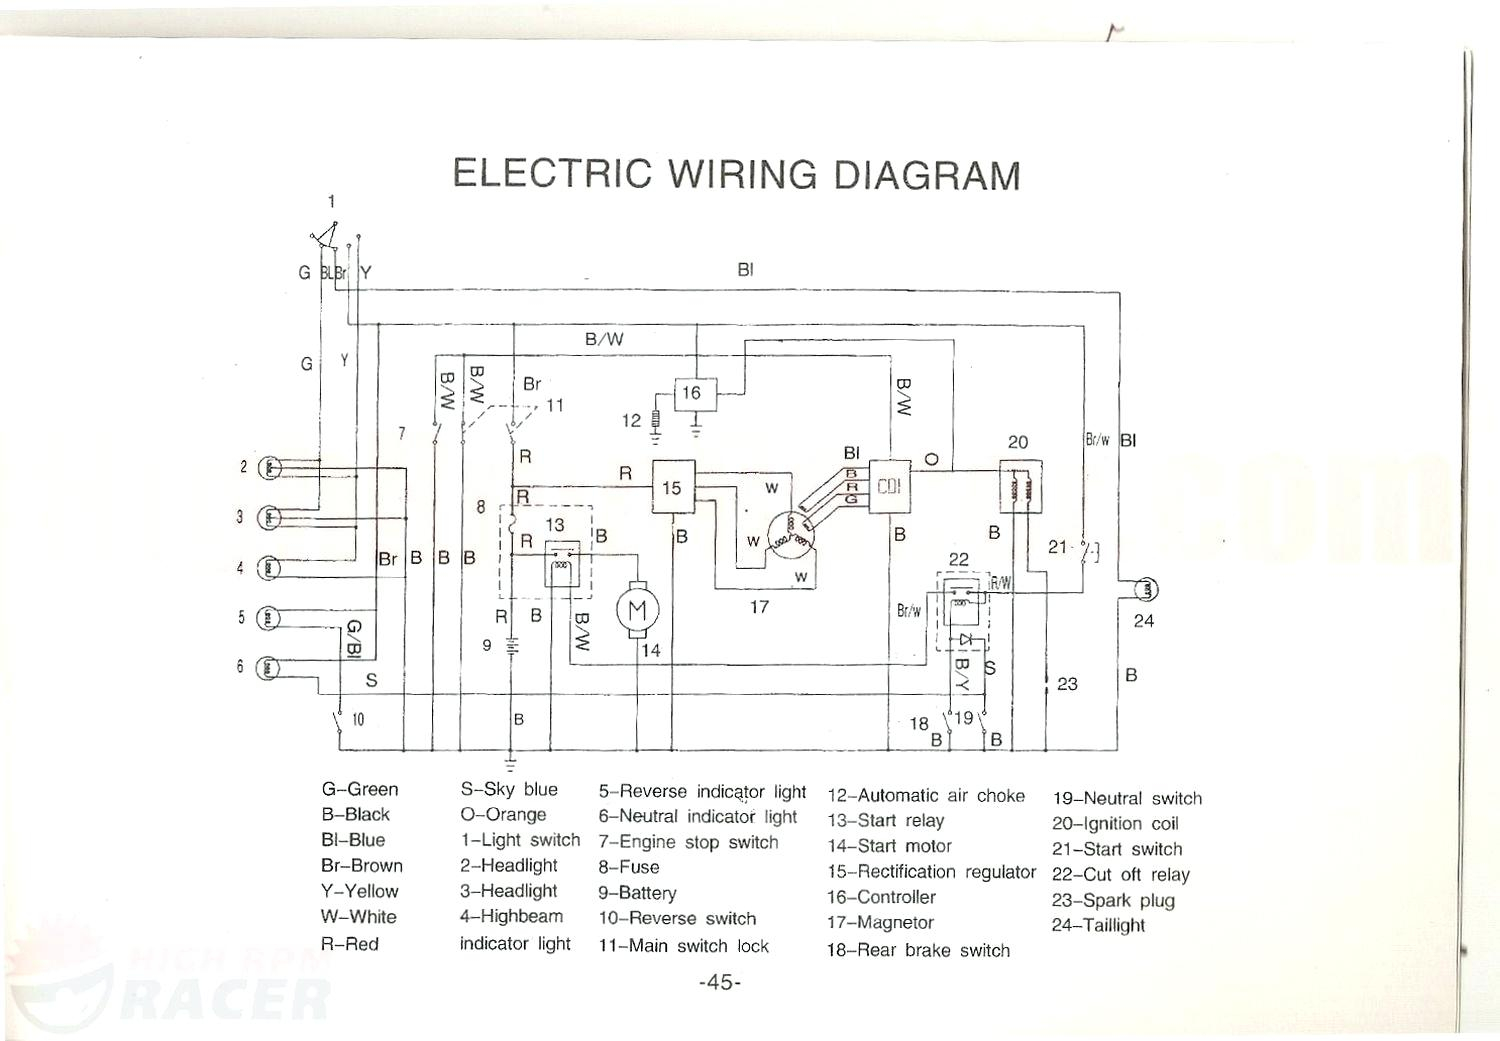 Vfd Control Wiring Diagram from wholefoodsonabudget.com